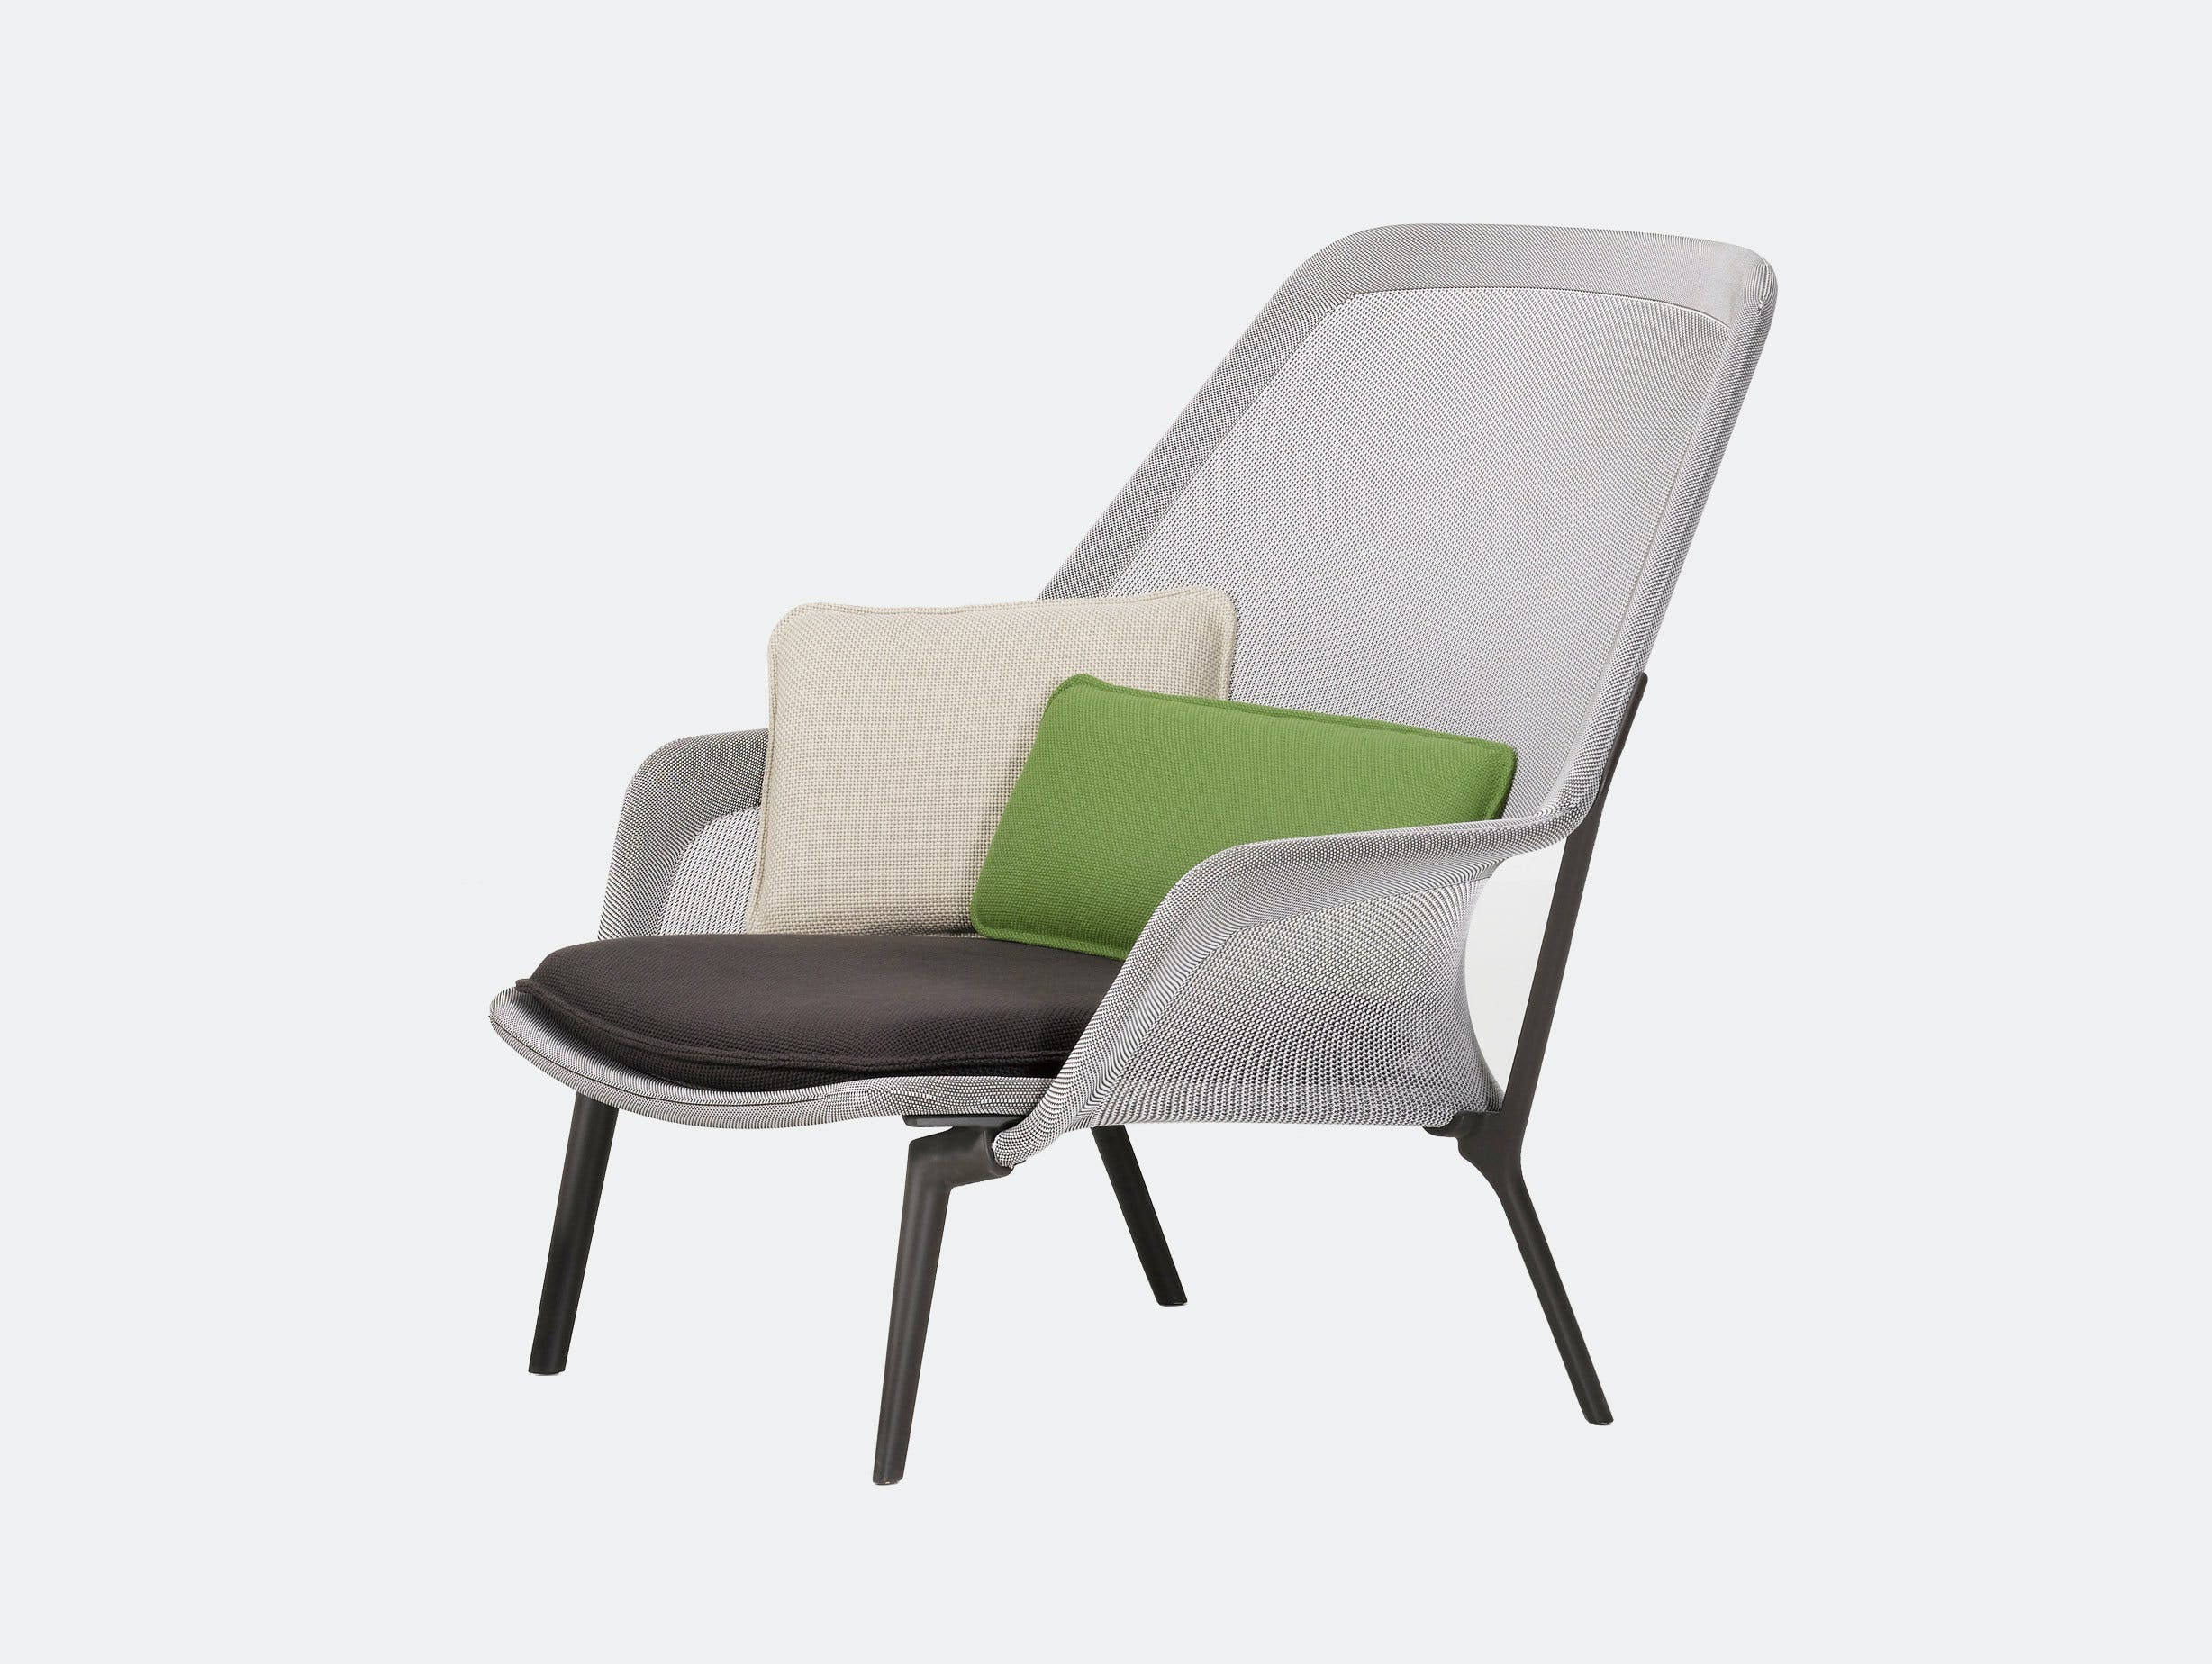 Vitra Slow Lounge Chair brown cream chocolate base Bouroullec